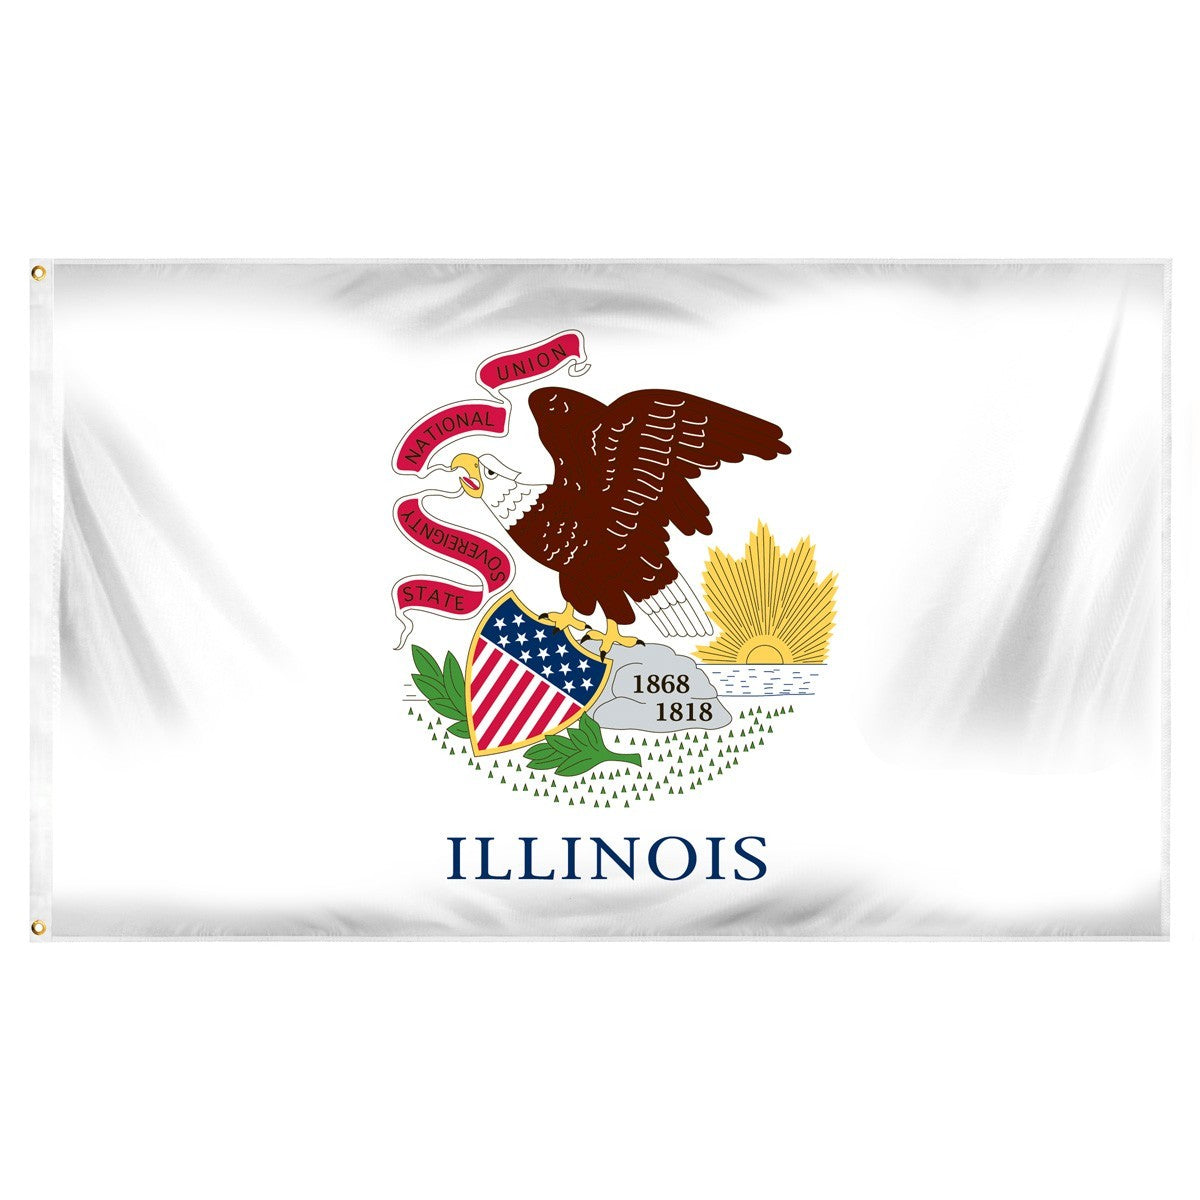 Illinois flags for sale by 1-800 Flags